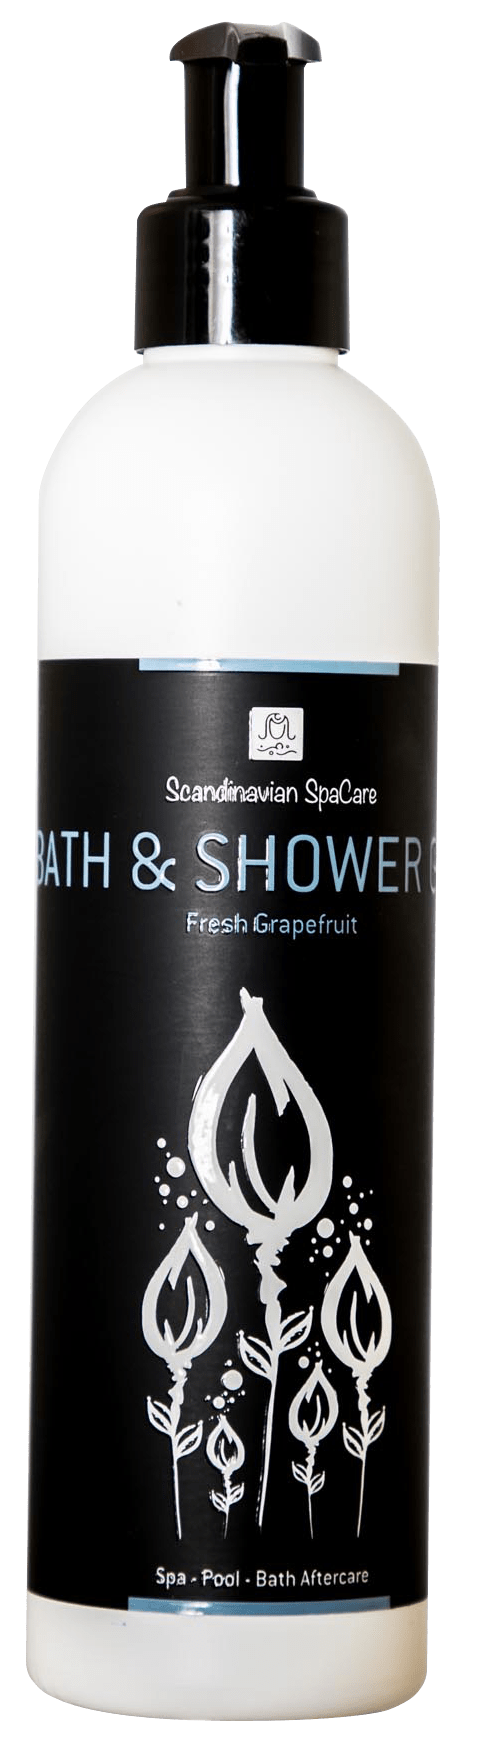 Bath & Shower gel